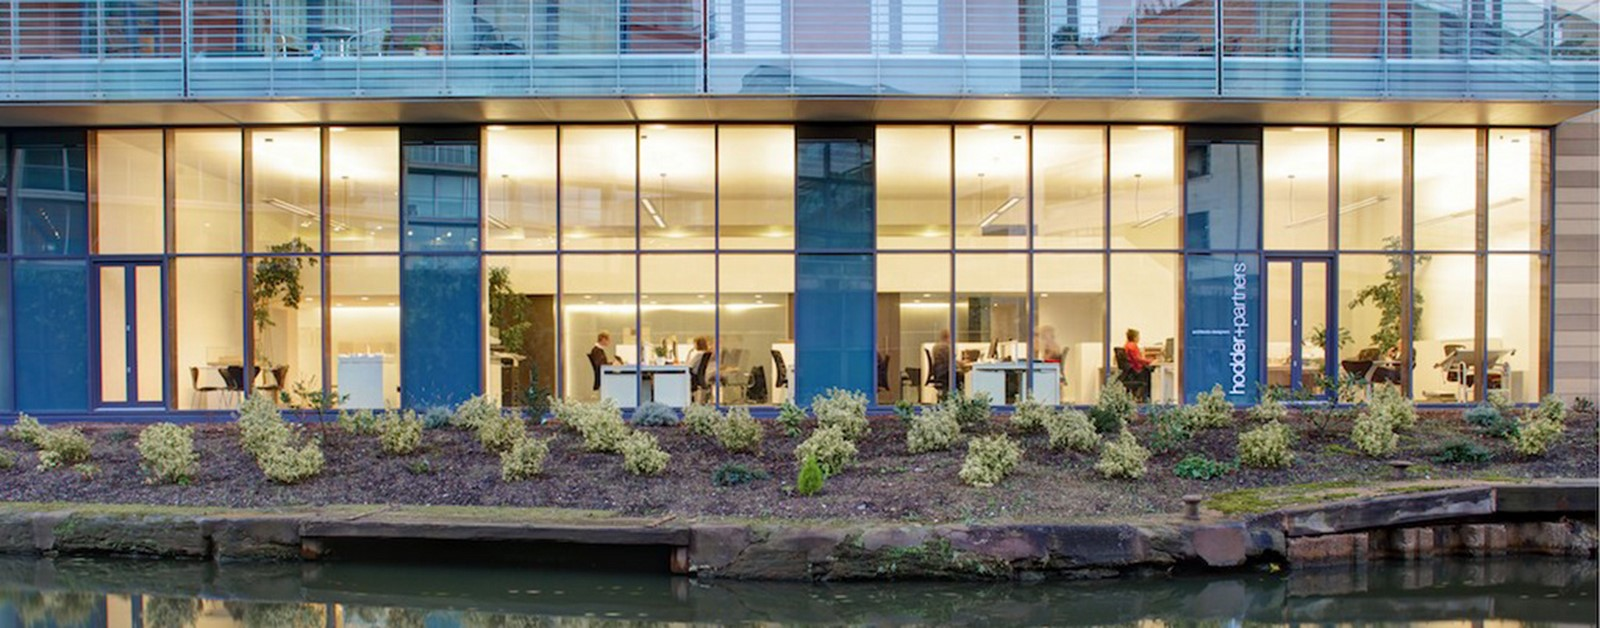 15 Projects by Hodder + Partners Sheet1